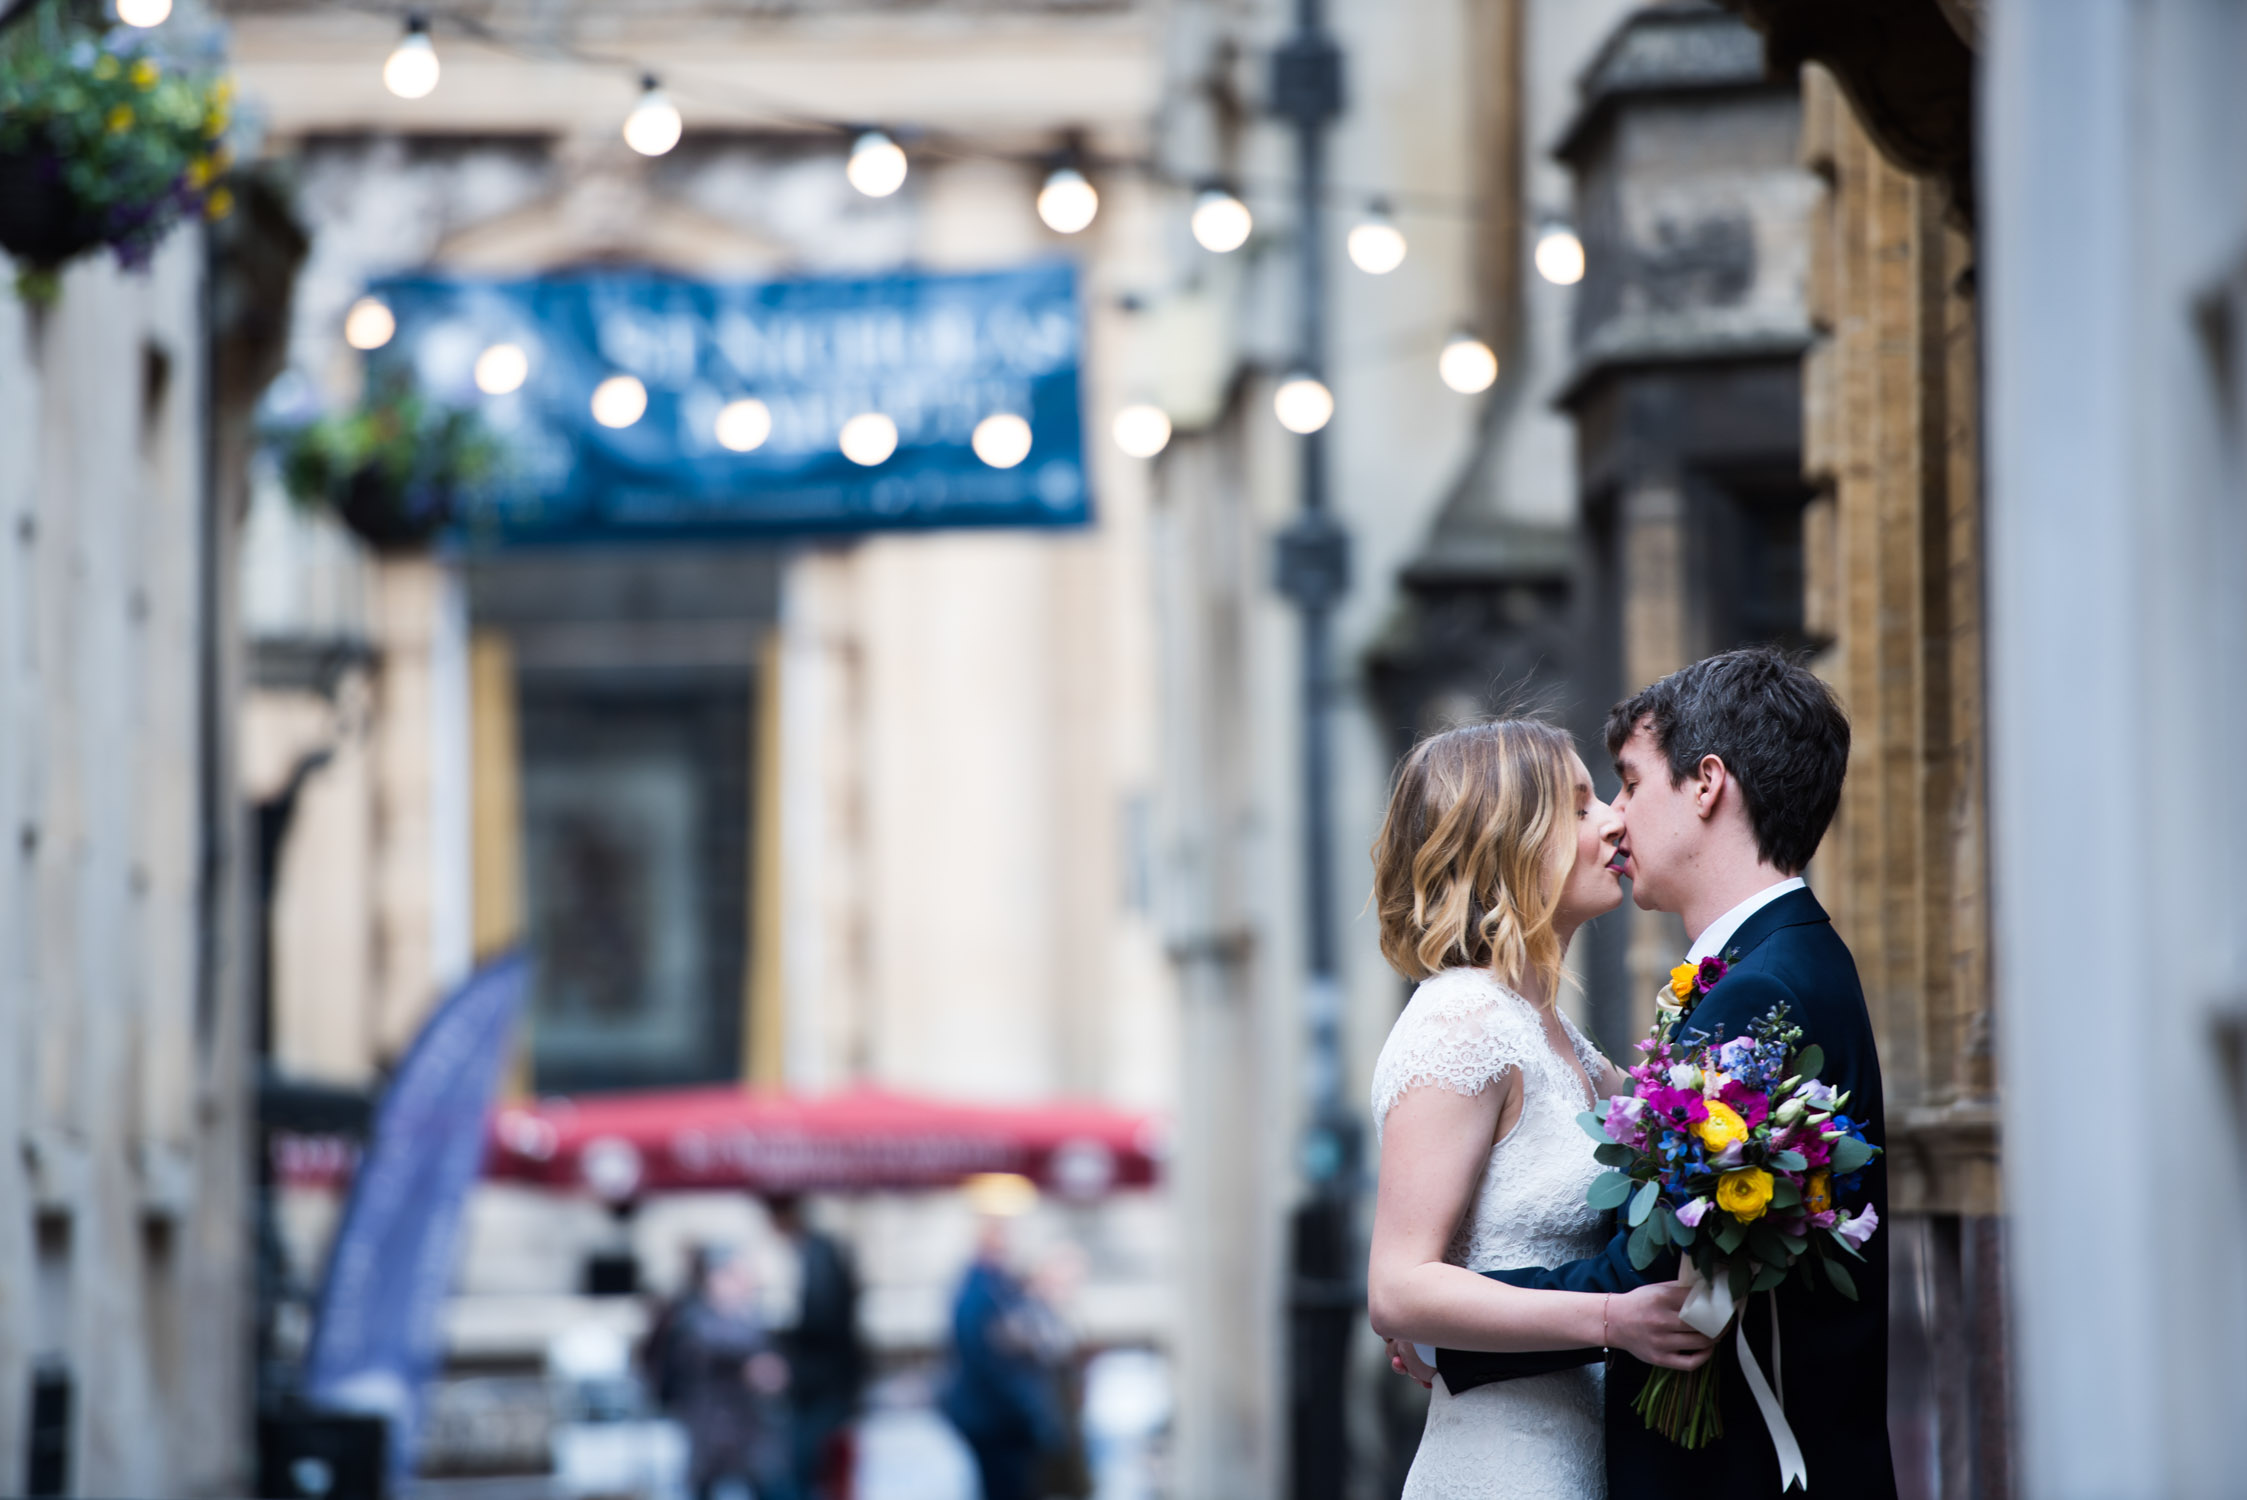 Bride and groom intimate wedding portraits in Bristol city centre, wedding photographer Bristol